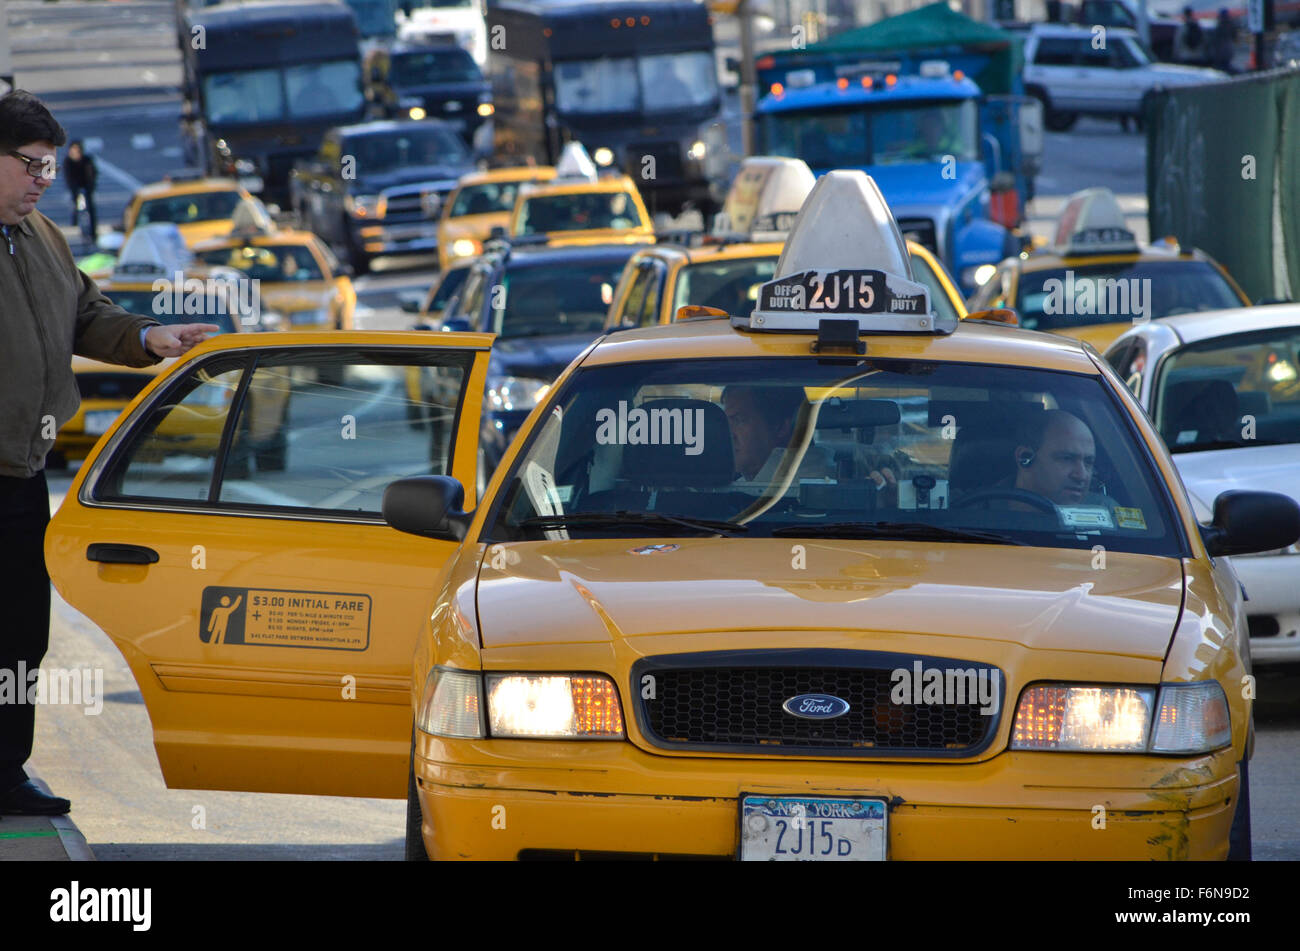 Taxicab letting off passengers in busy New York City - Stock Image